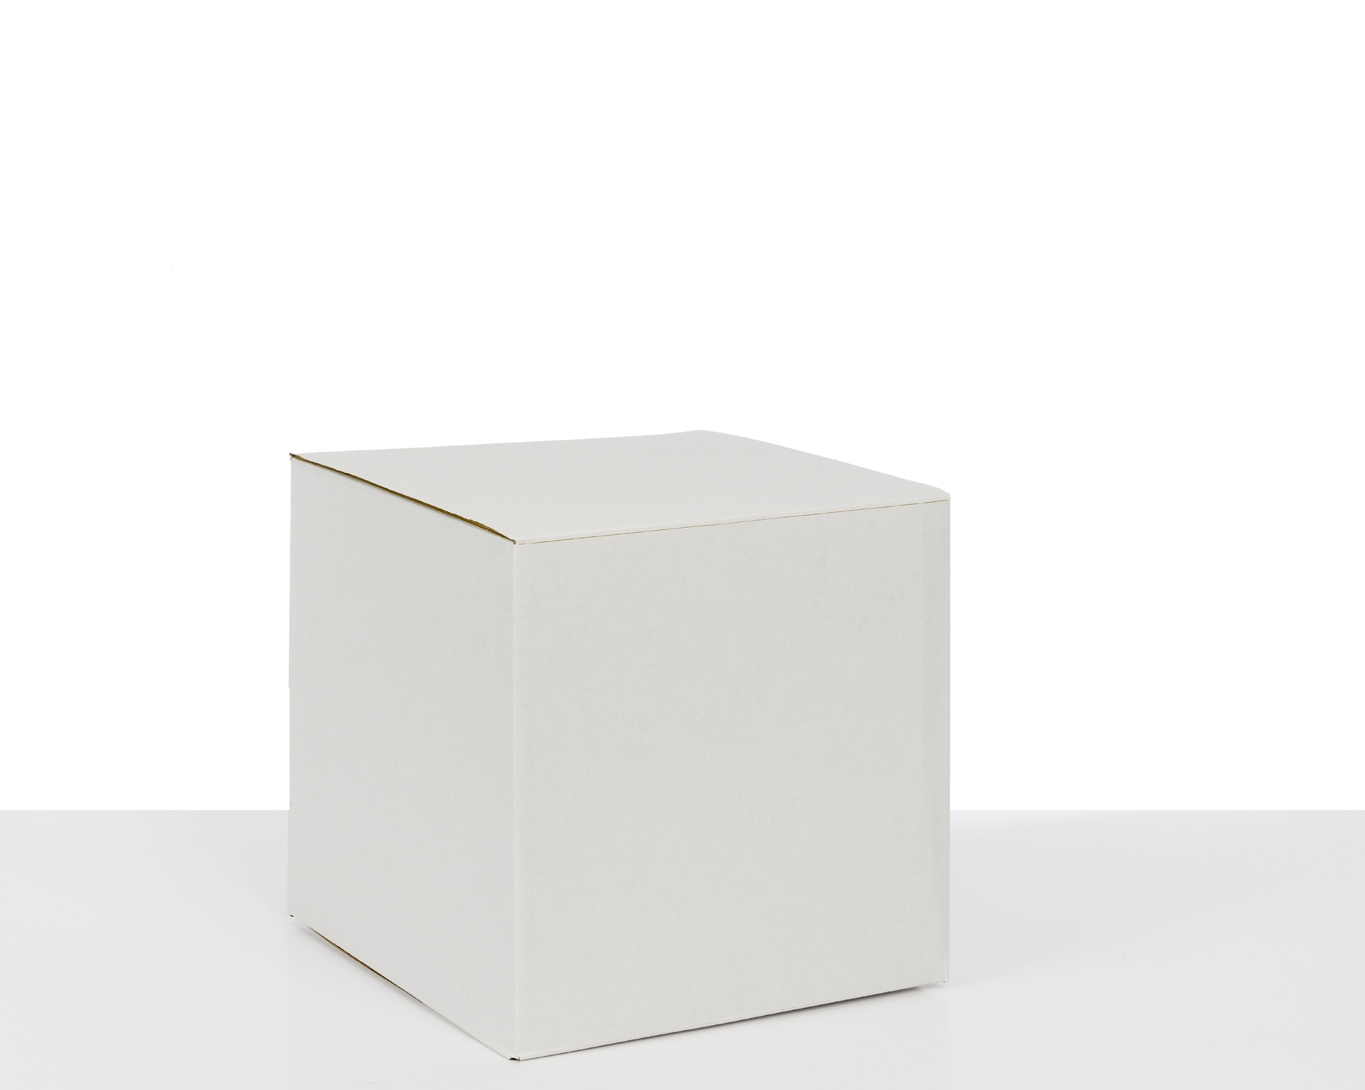 Cardboard Hat Box To Store Or Ship Hats Or Headdresses